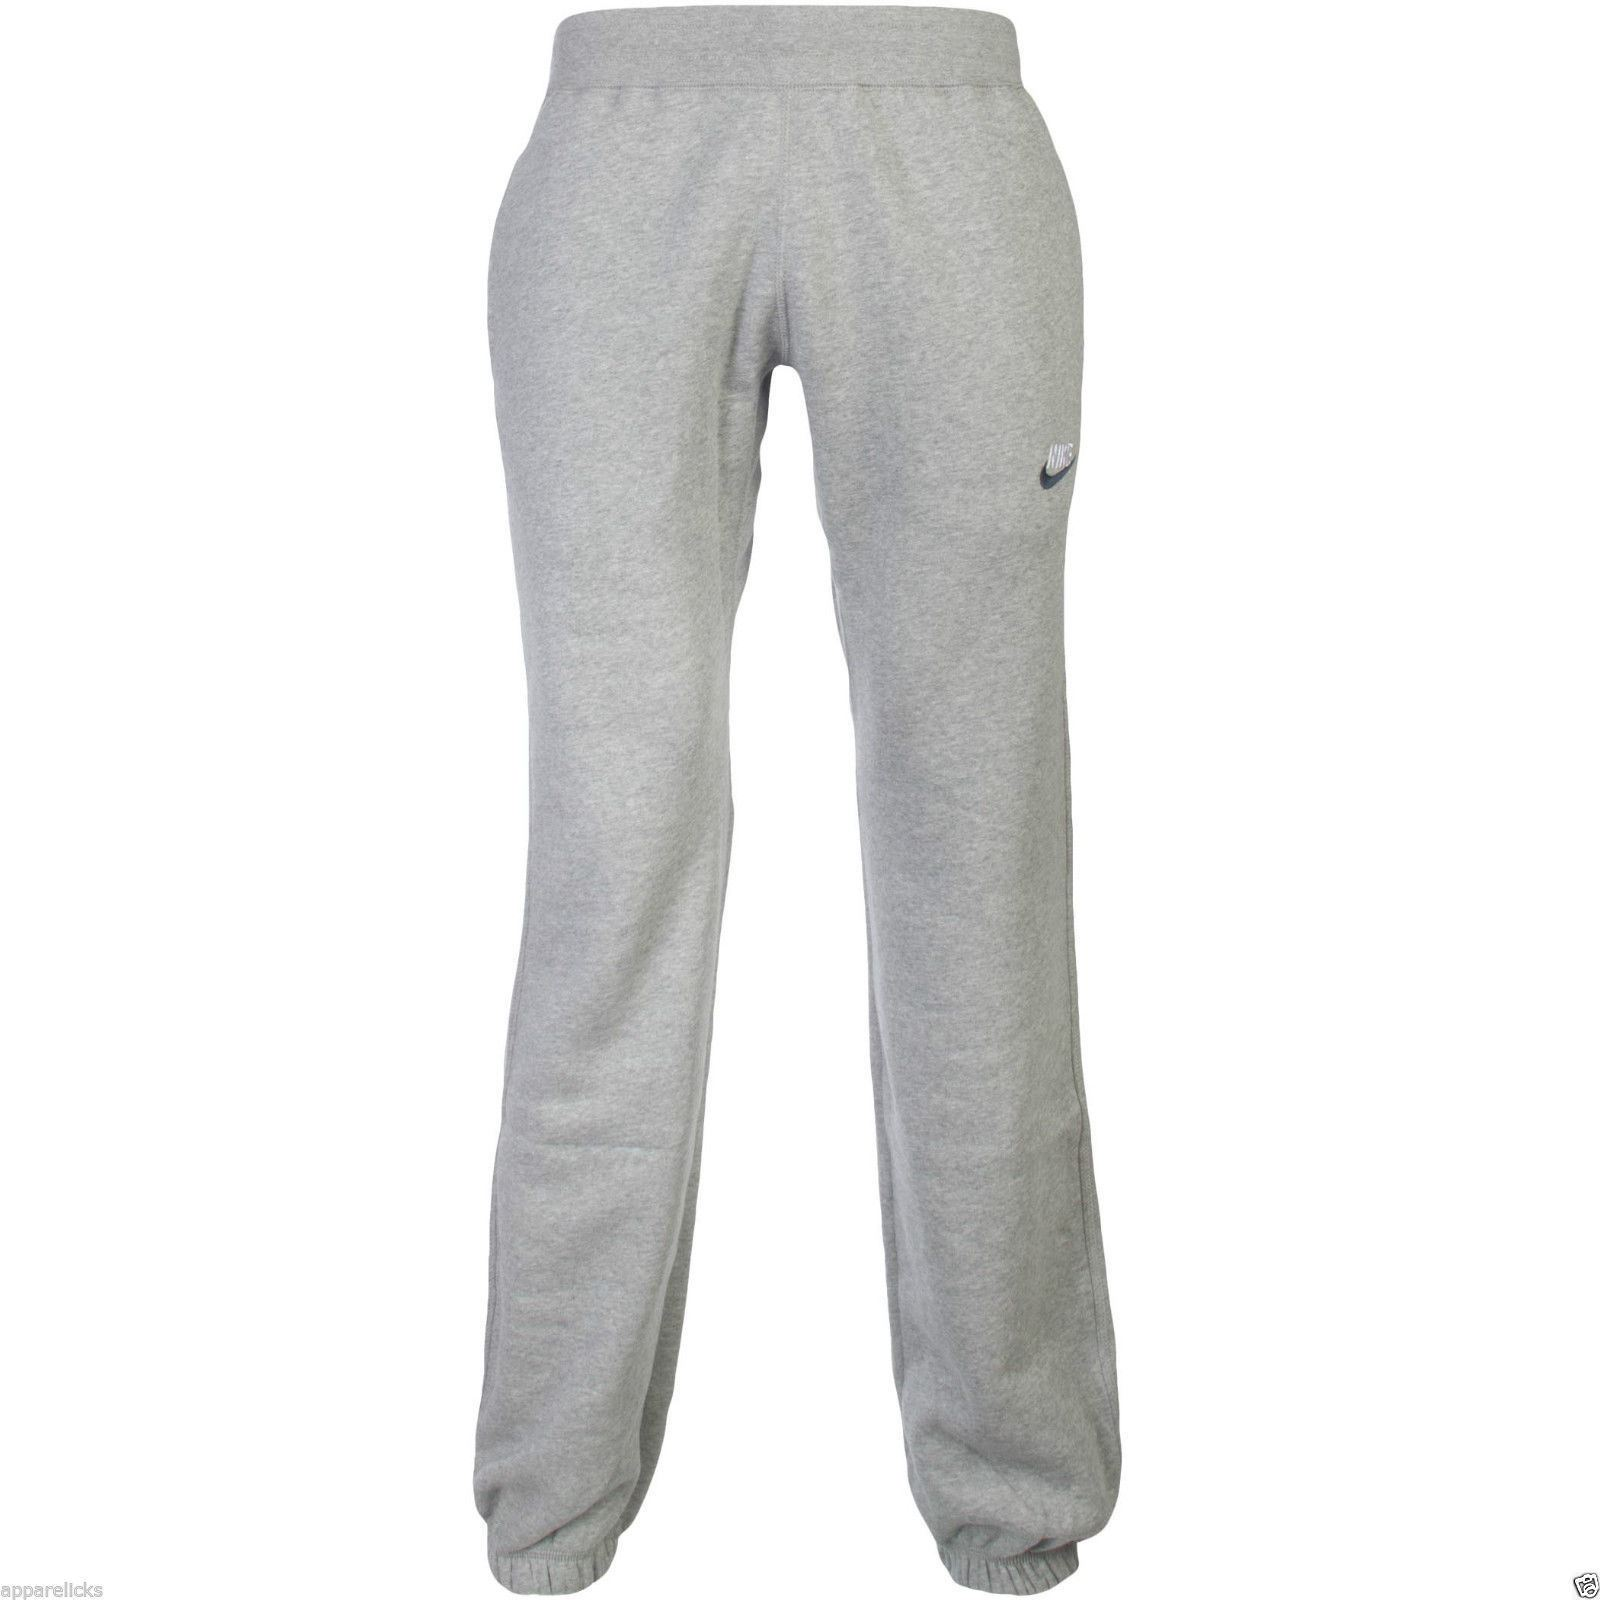 View all mens clothing Welcome to the Sports Direct Mens Sweatpants category. Here you will find a huge variety of sweatpants and joggers. Here you will find a huge variety of sweatpants and joggers. Whether you're working out or chilling out we're sure to have the perfect pair of jogging bottoms for you.